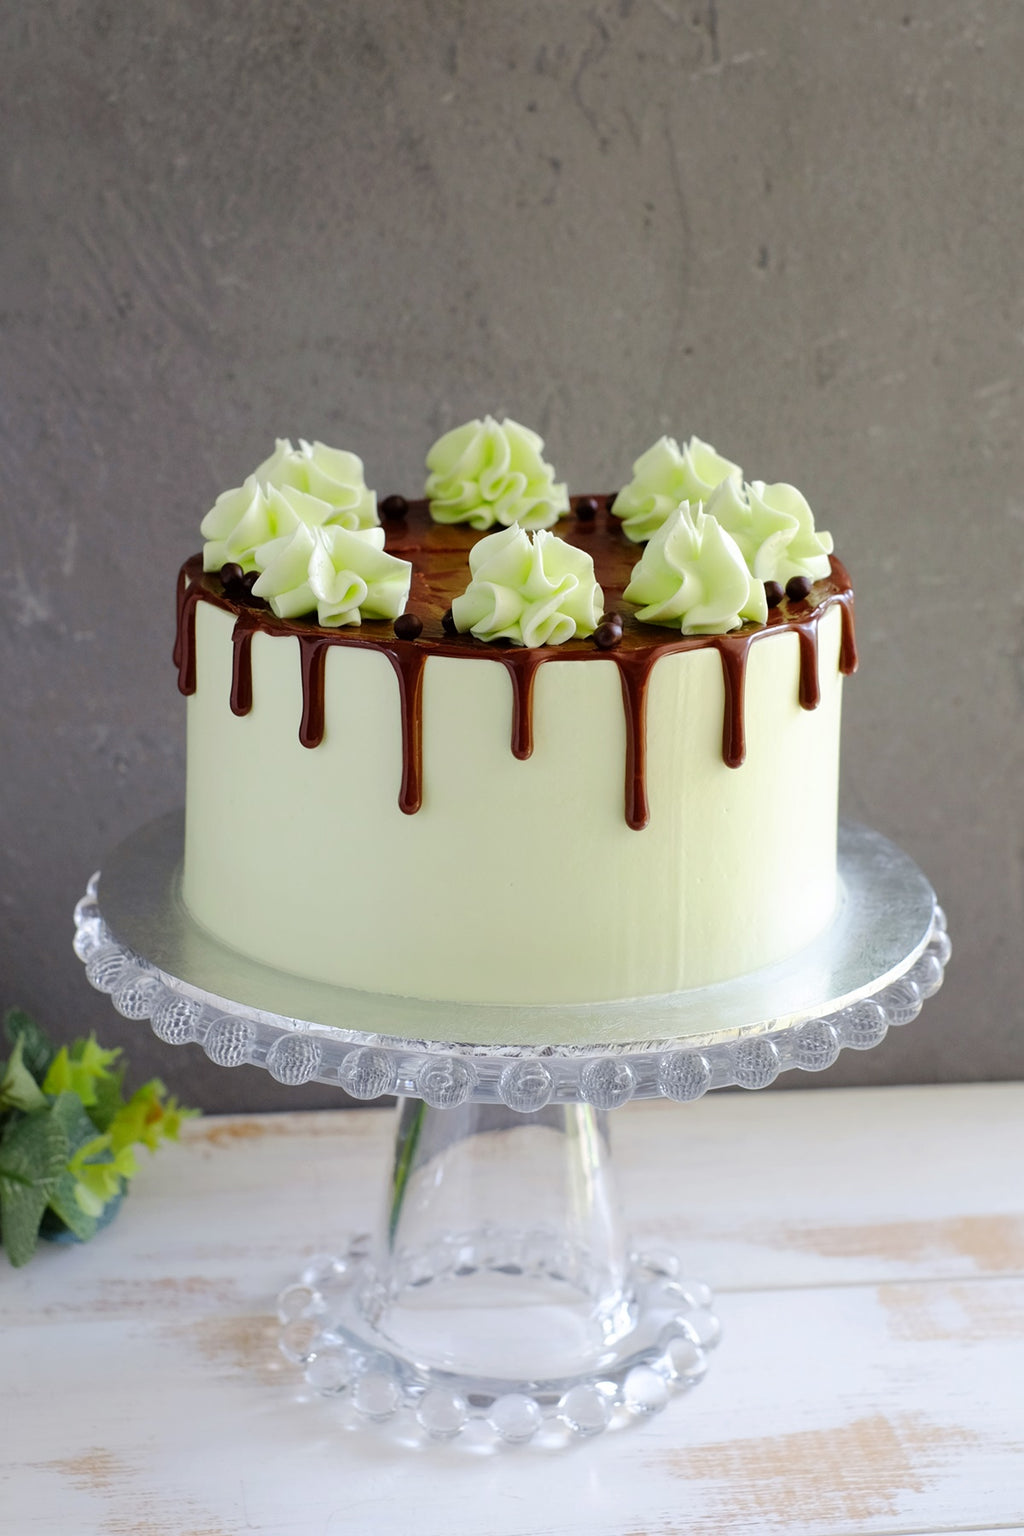 Chocolate Mint Cake (Next Day Collection)